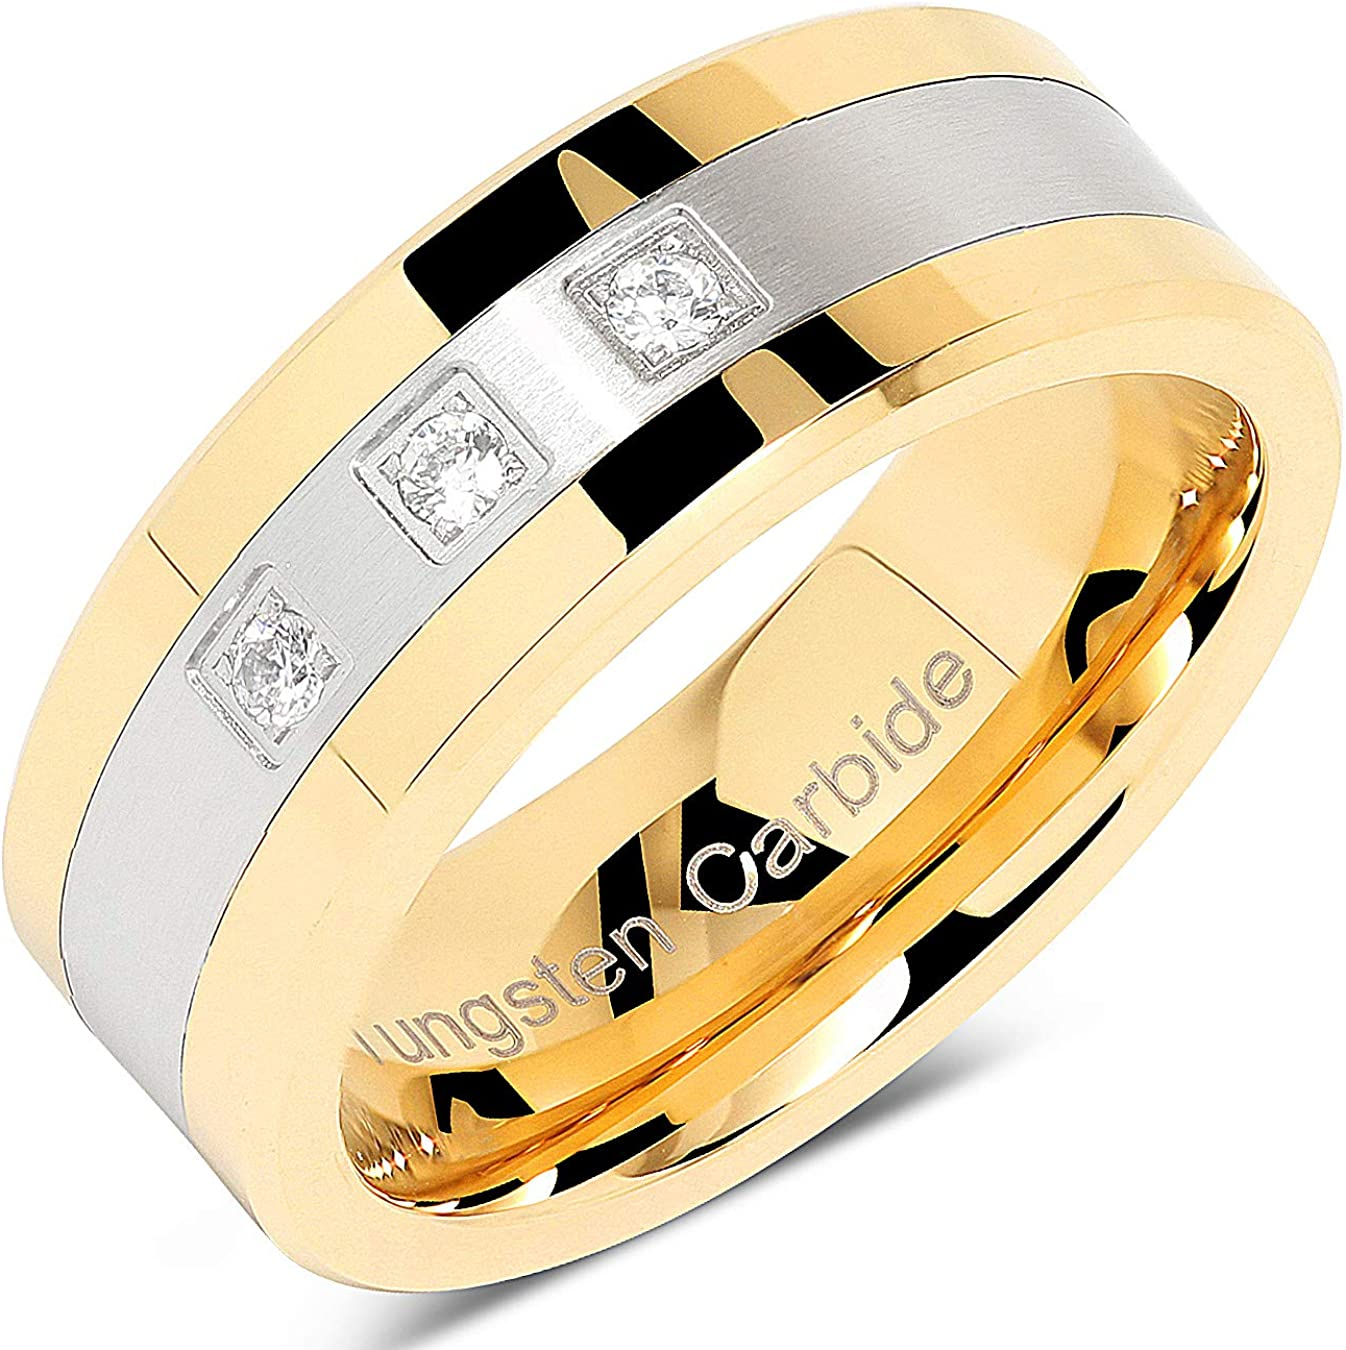 100S JEWELRY Tungsten Rings shop For Wedding Max 67% OFF Silver Men Crystal Gold